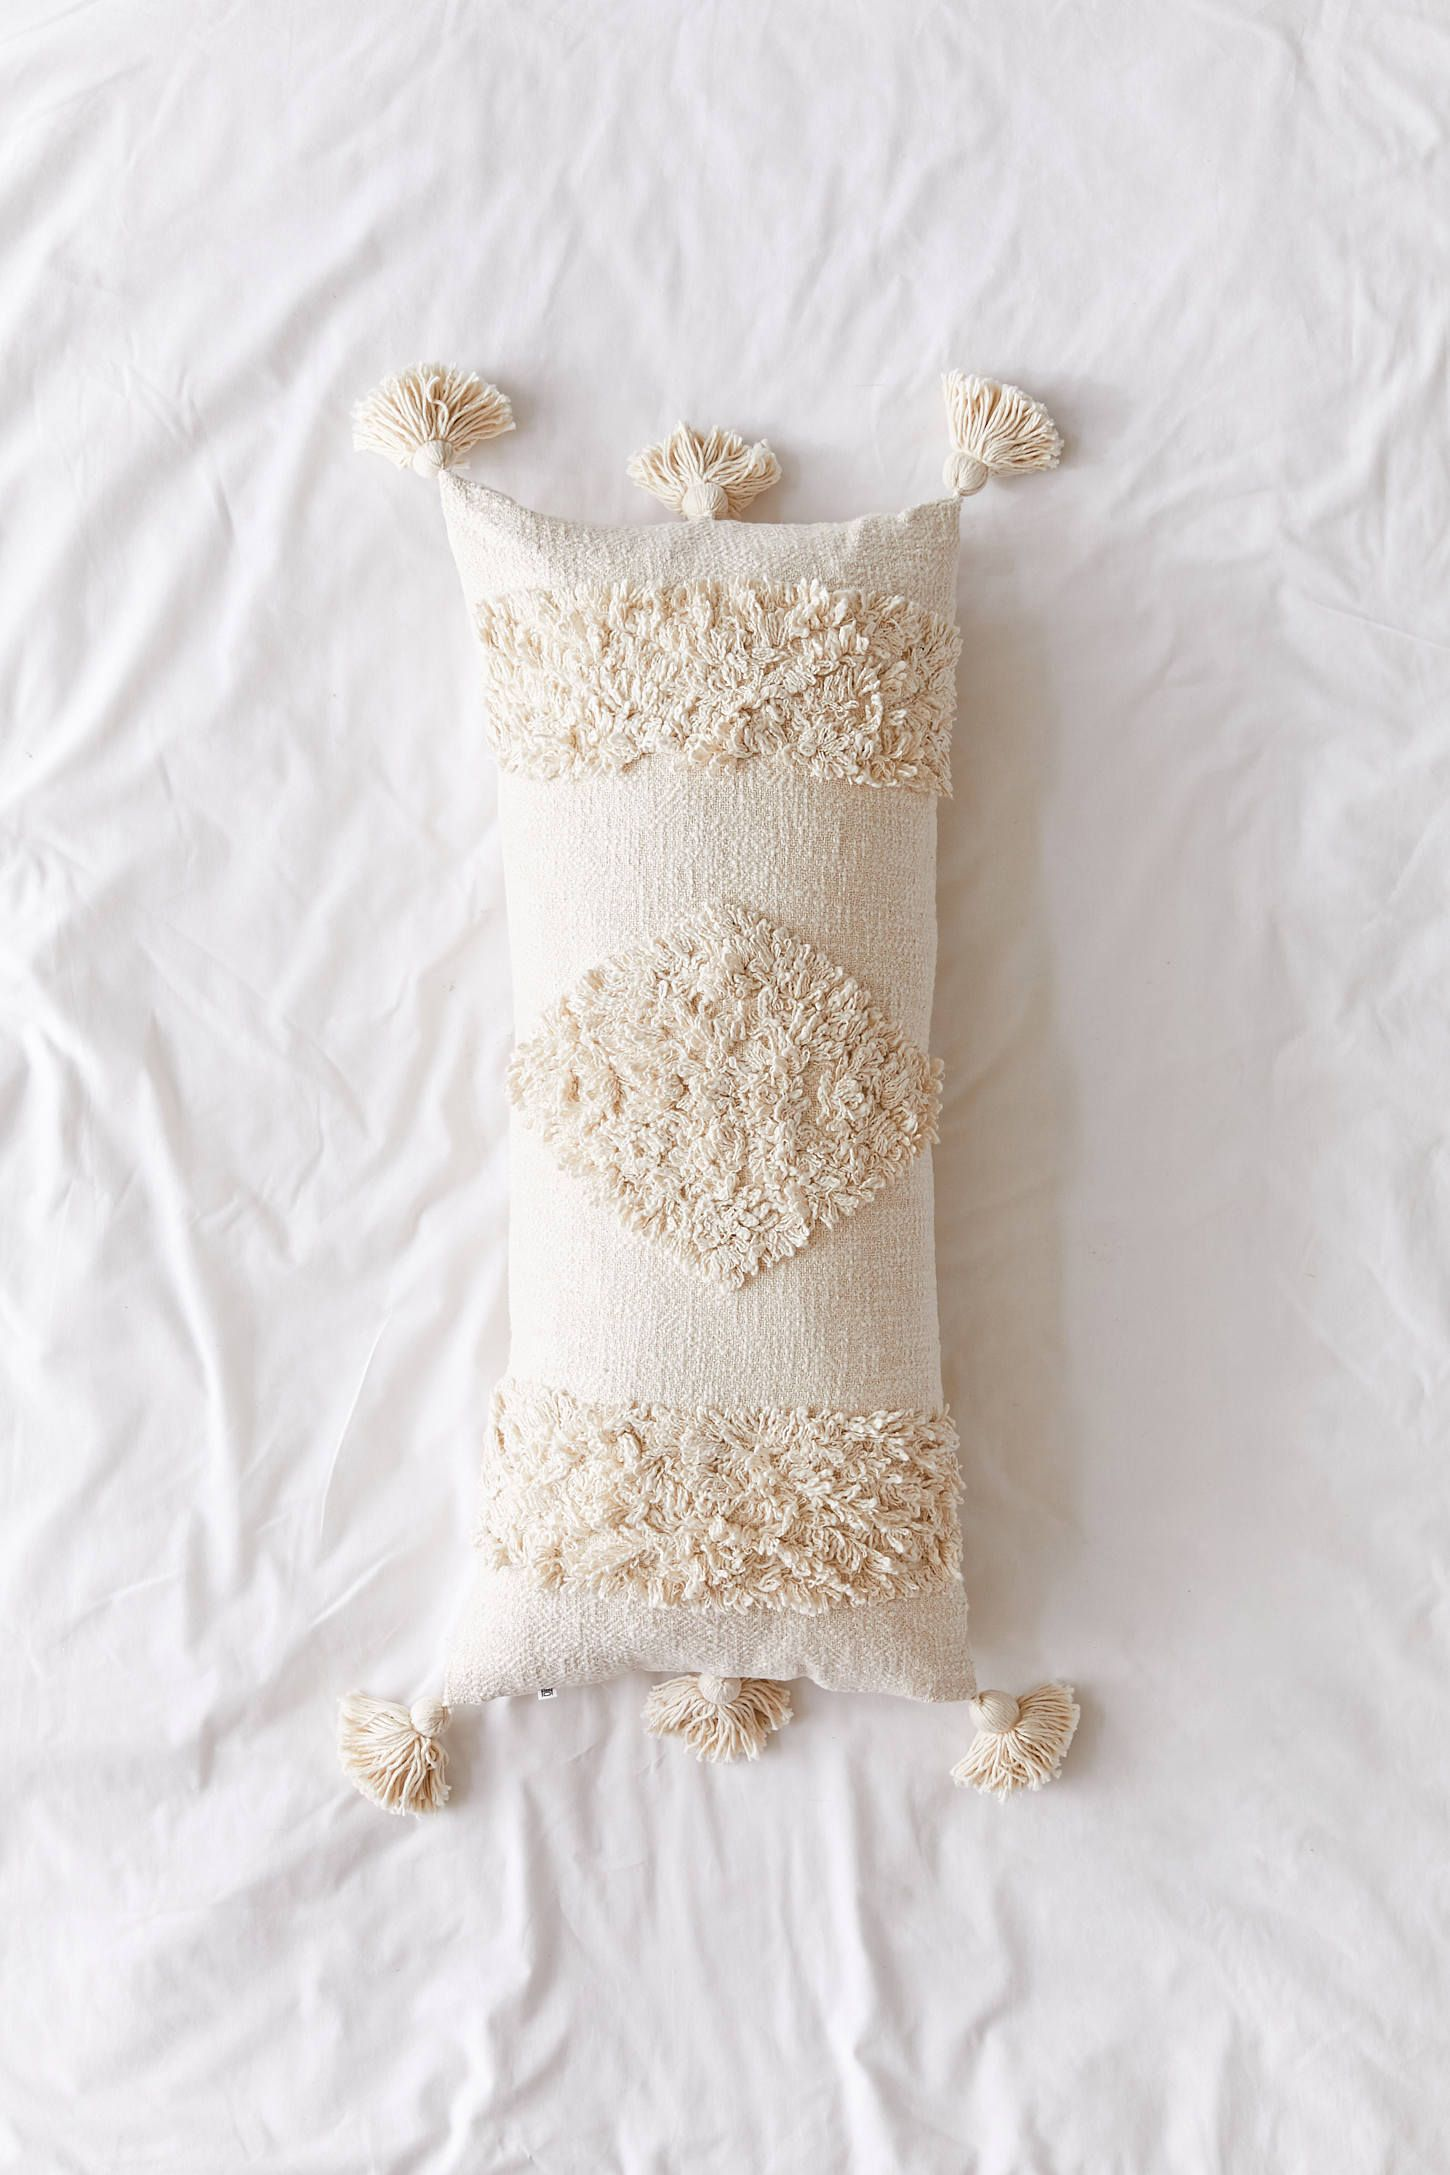 Rumi Shag Body Pillow | Body pillow